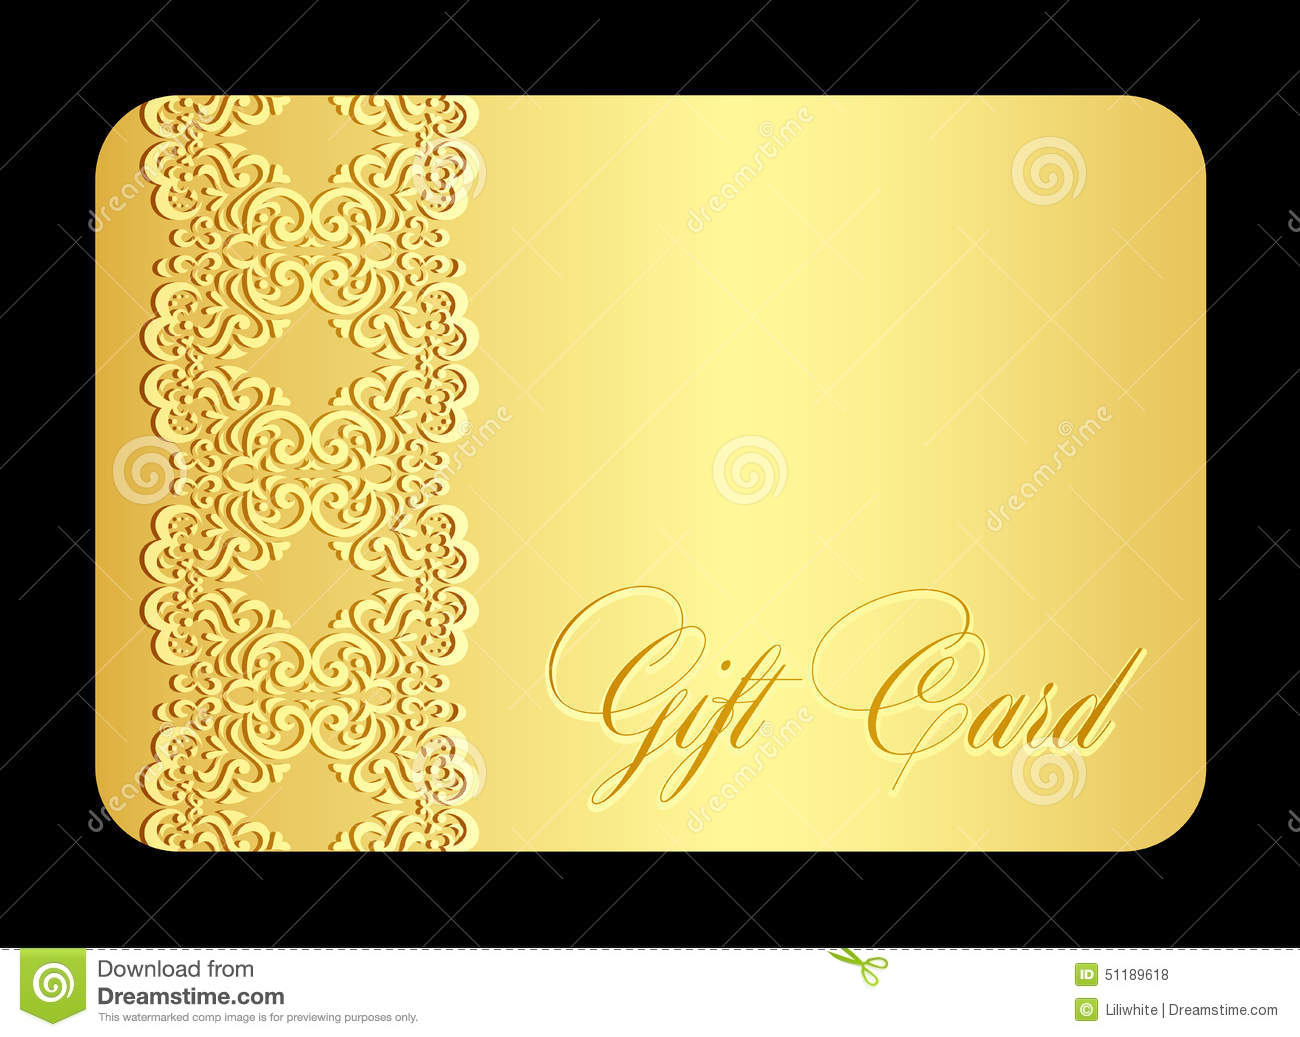 gift card prices photo - 1